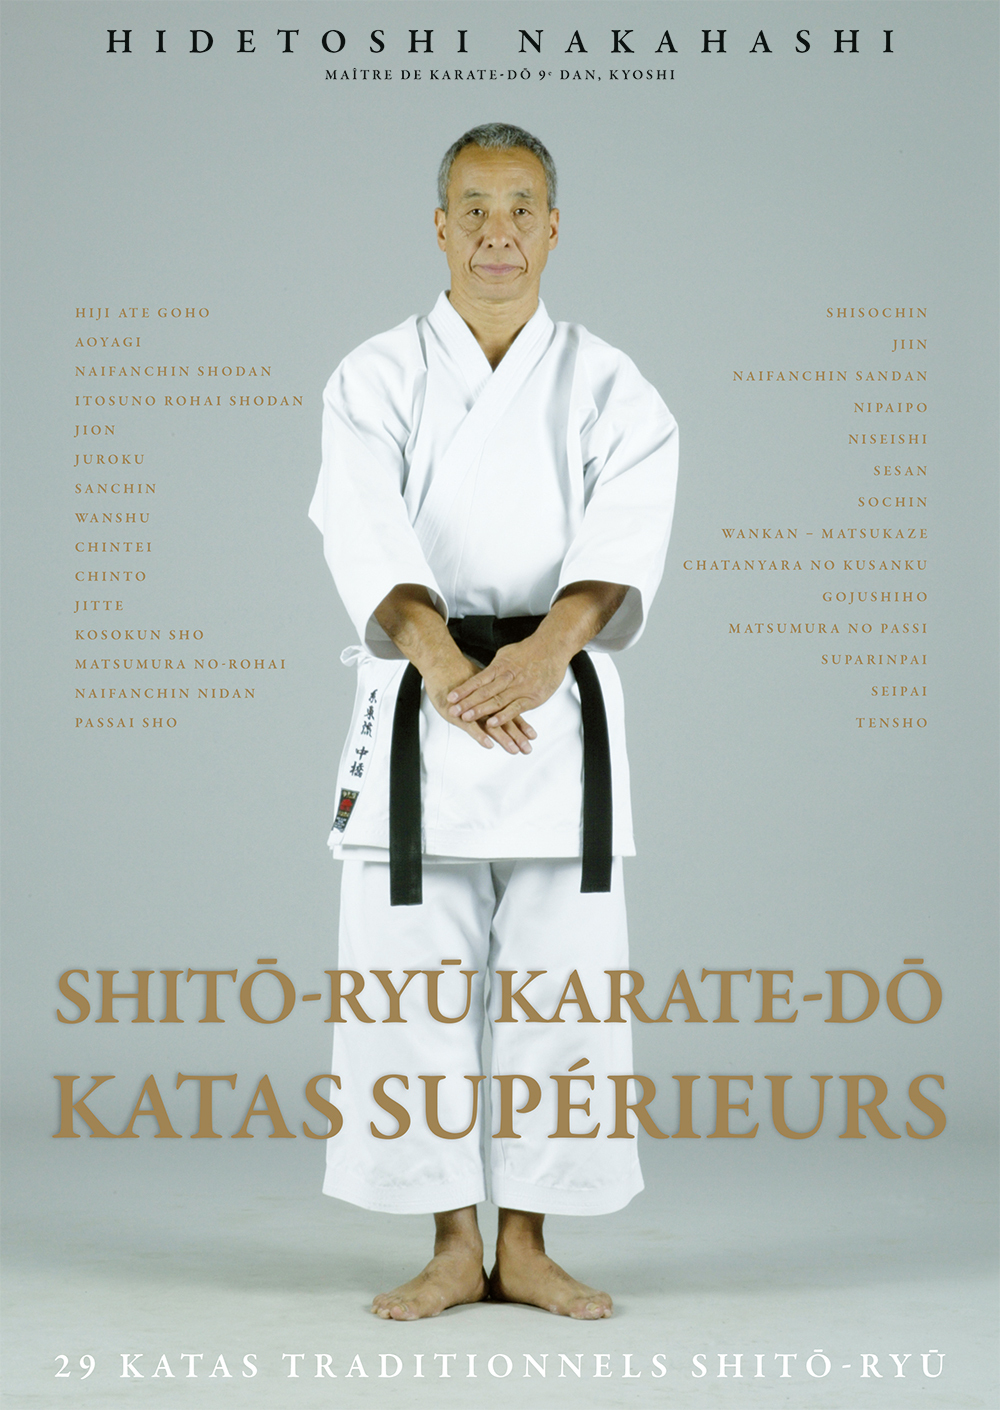 SHITO-RYU KARATE-DO KATAS SUPERIEURS